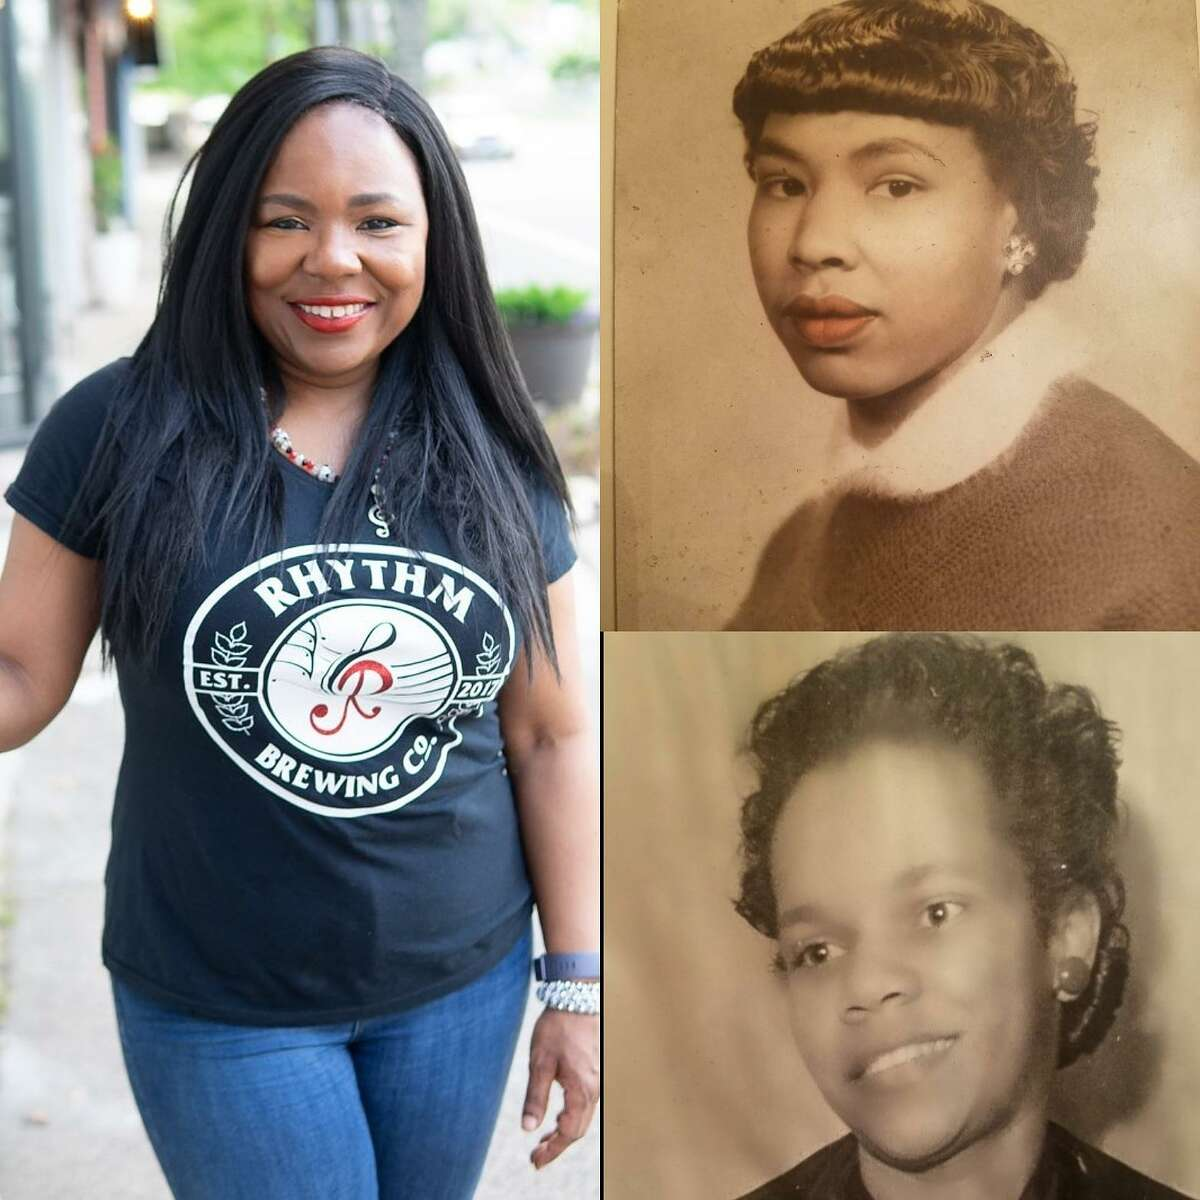 Alisa Bowens-Mercado, founder of Rhythm Brewing Co., the first Black, female-owned beer company in Connecticut.